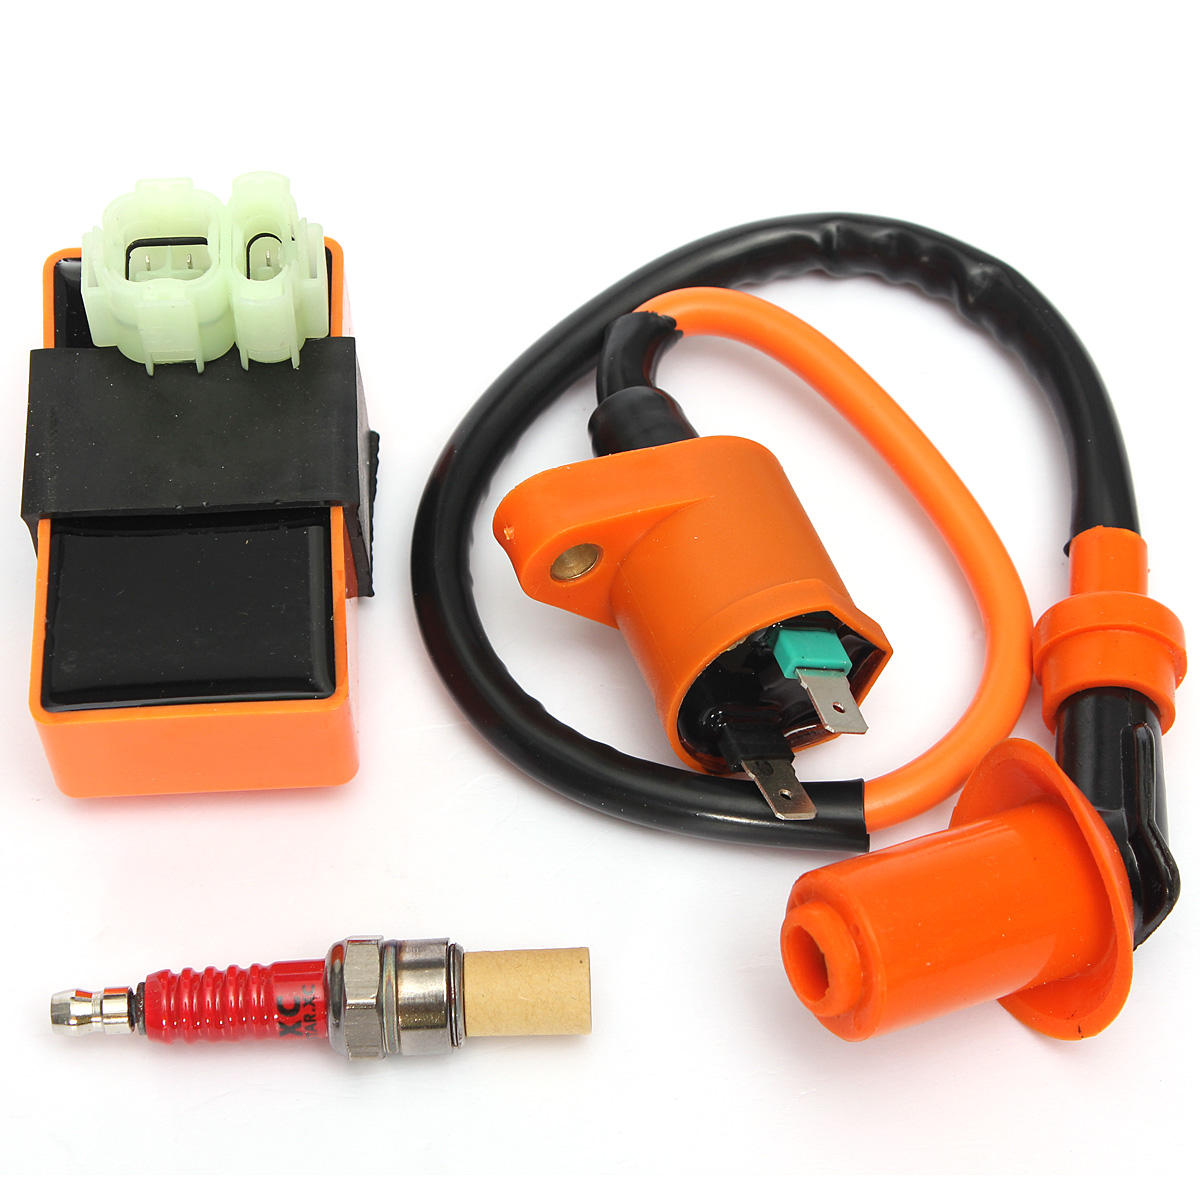 ignition coil+racing cdi box+ spark plug for gy6 50 125 150cc moped scooter  atv go carts cod